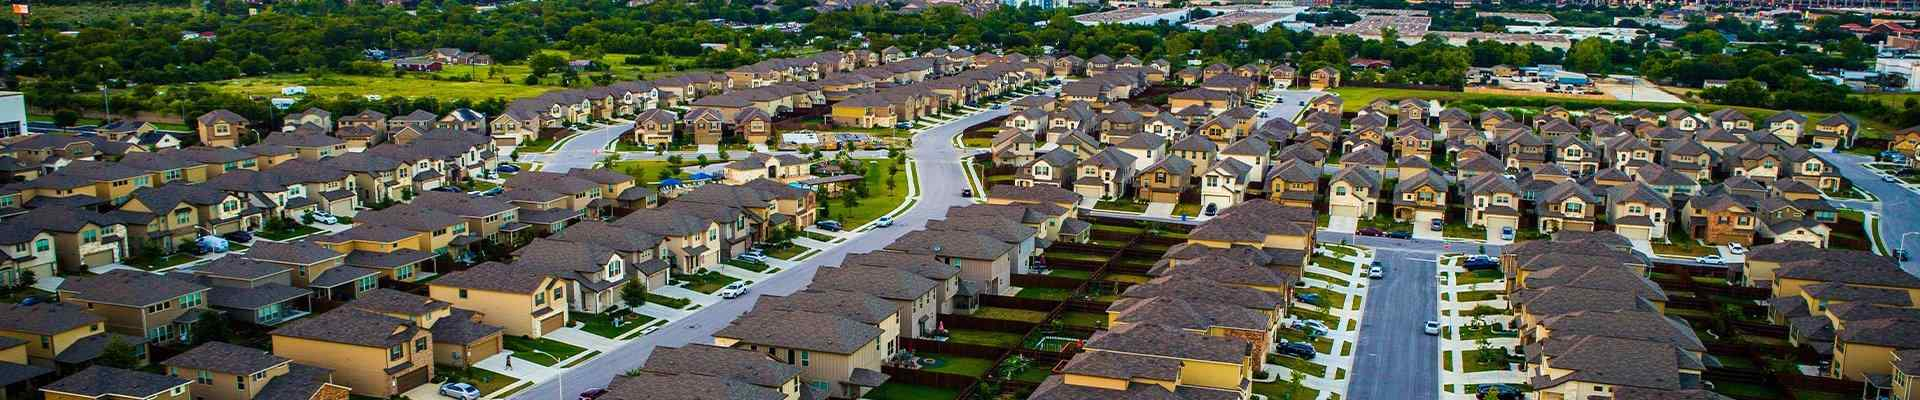 aerial view of a suburban neighborhood in corinth texas